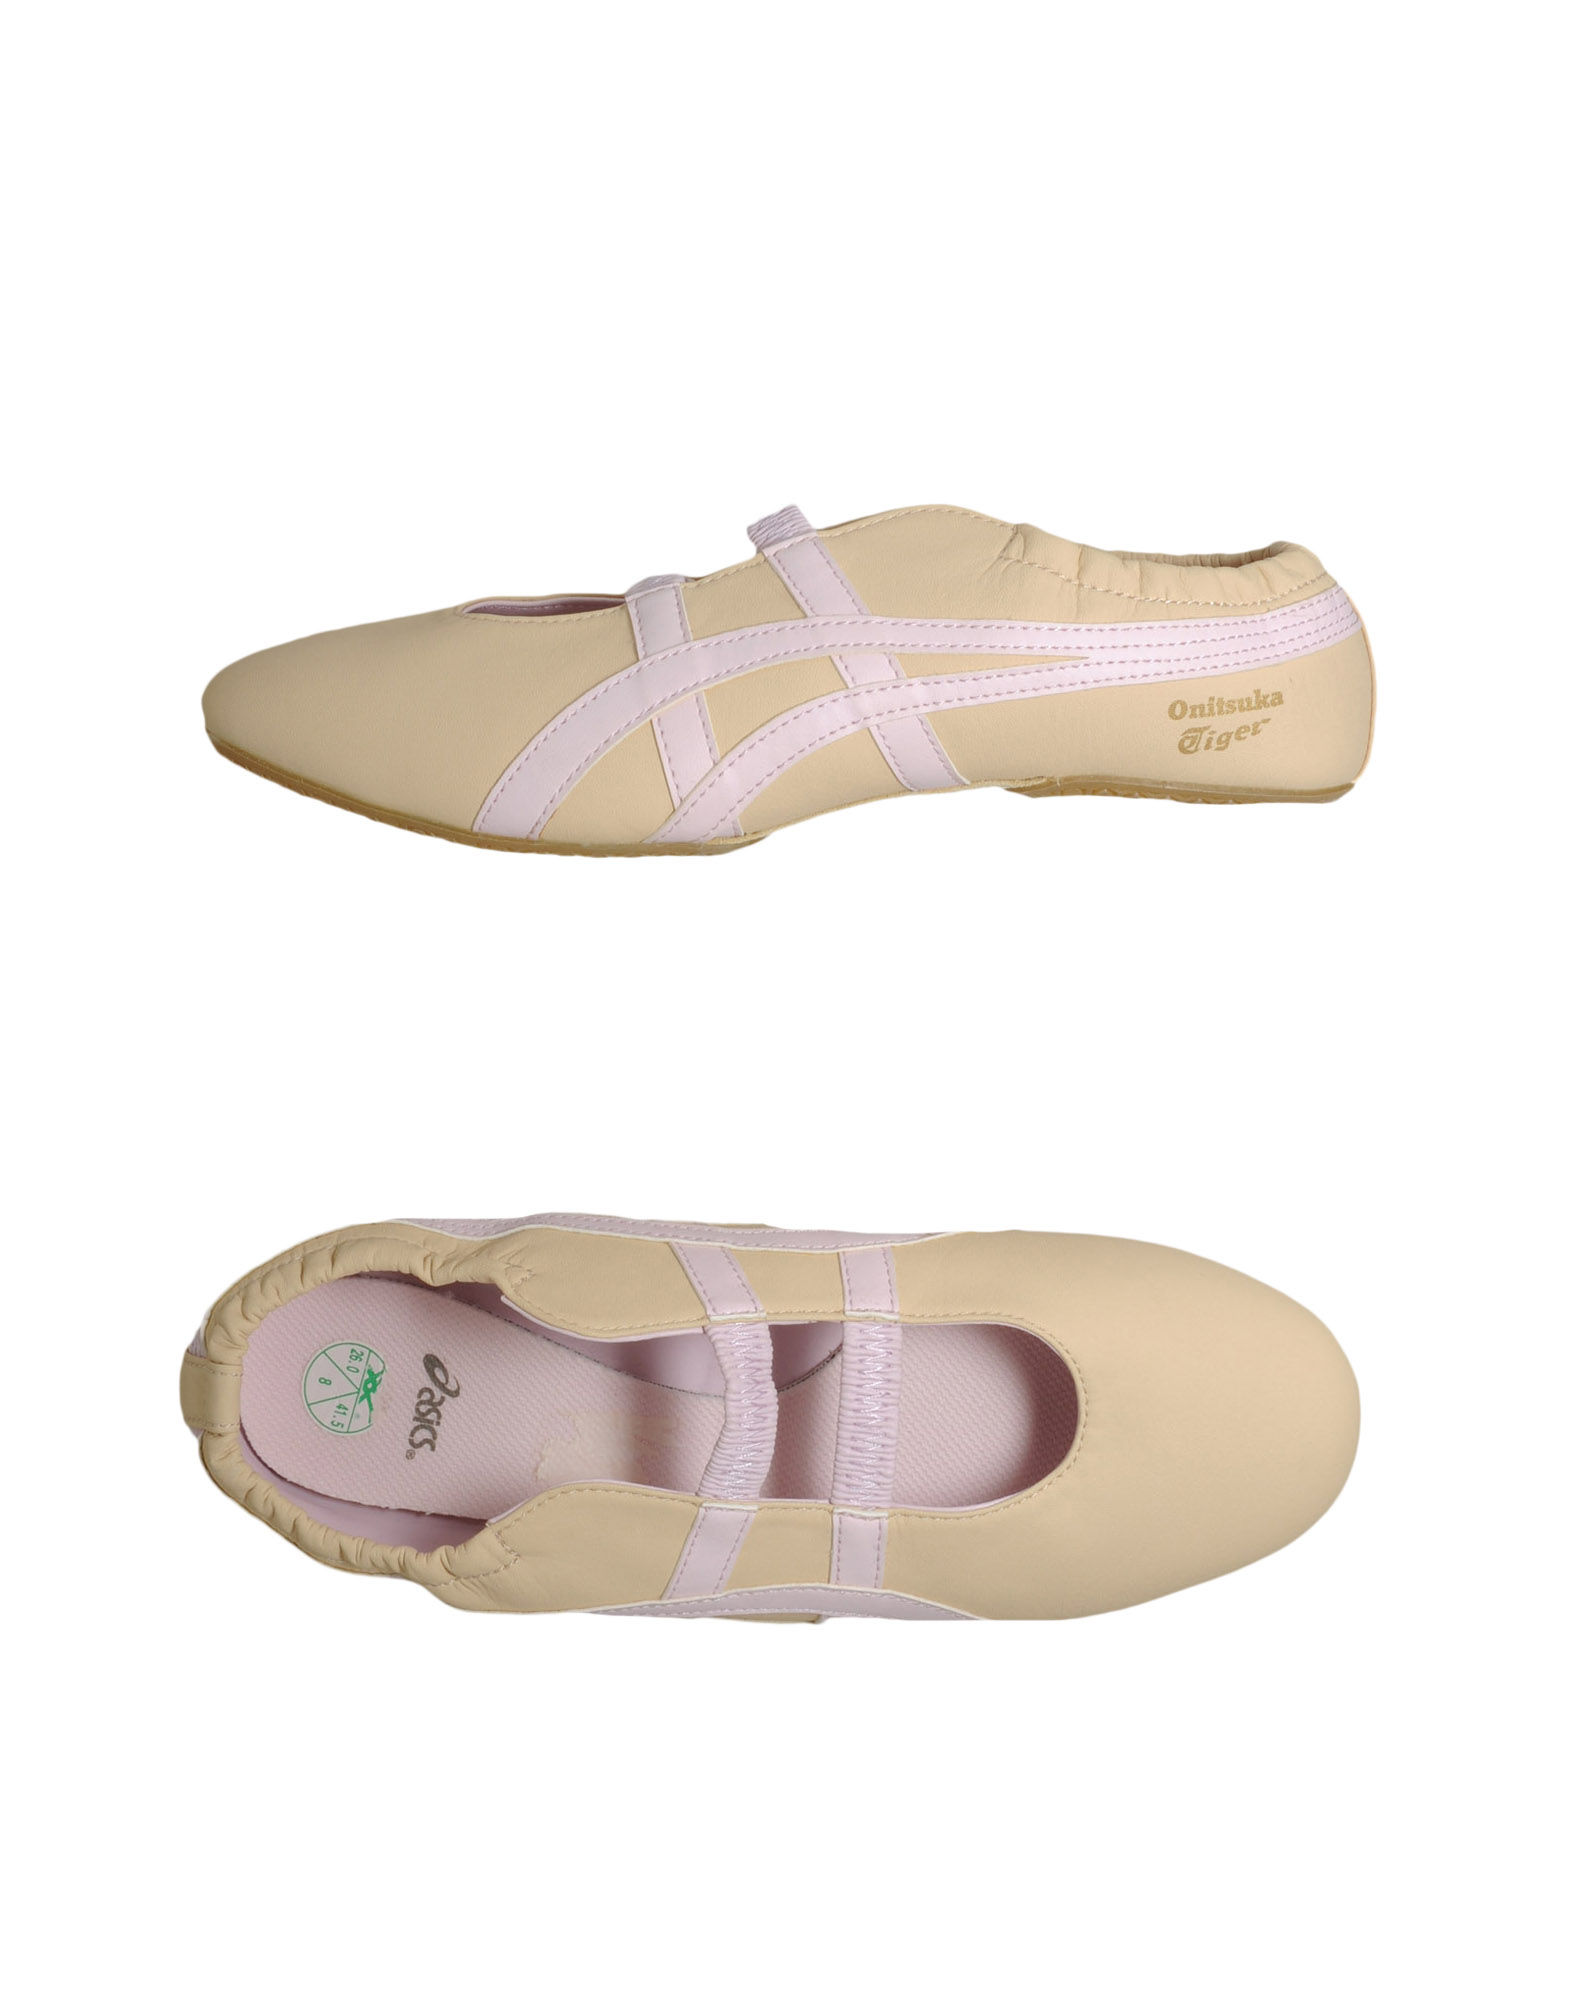 Asics Ballet Flats in Sand (Natural) - Lyst